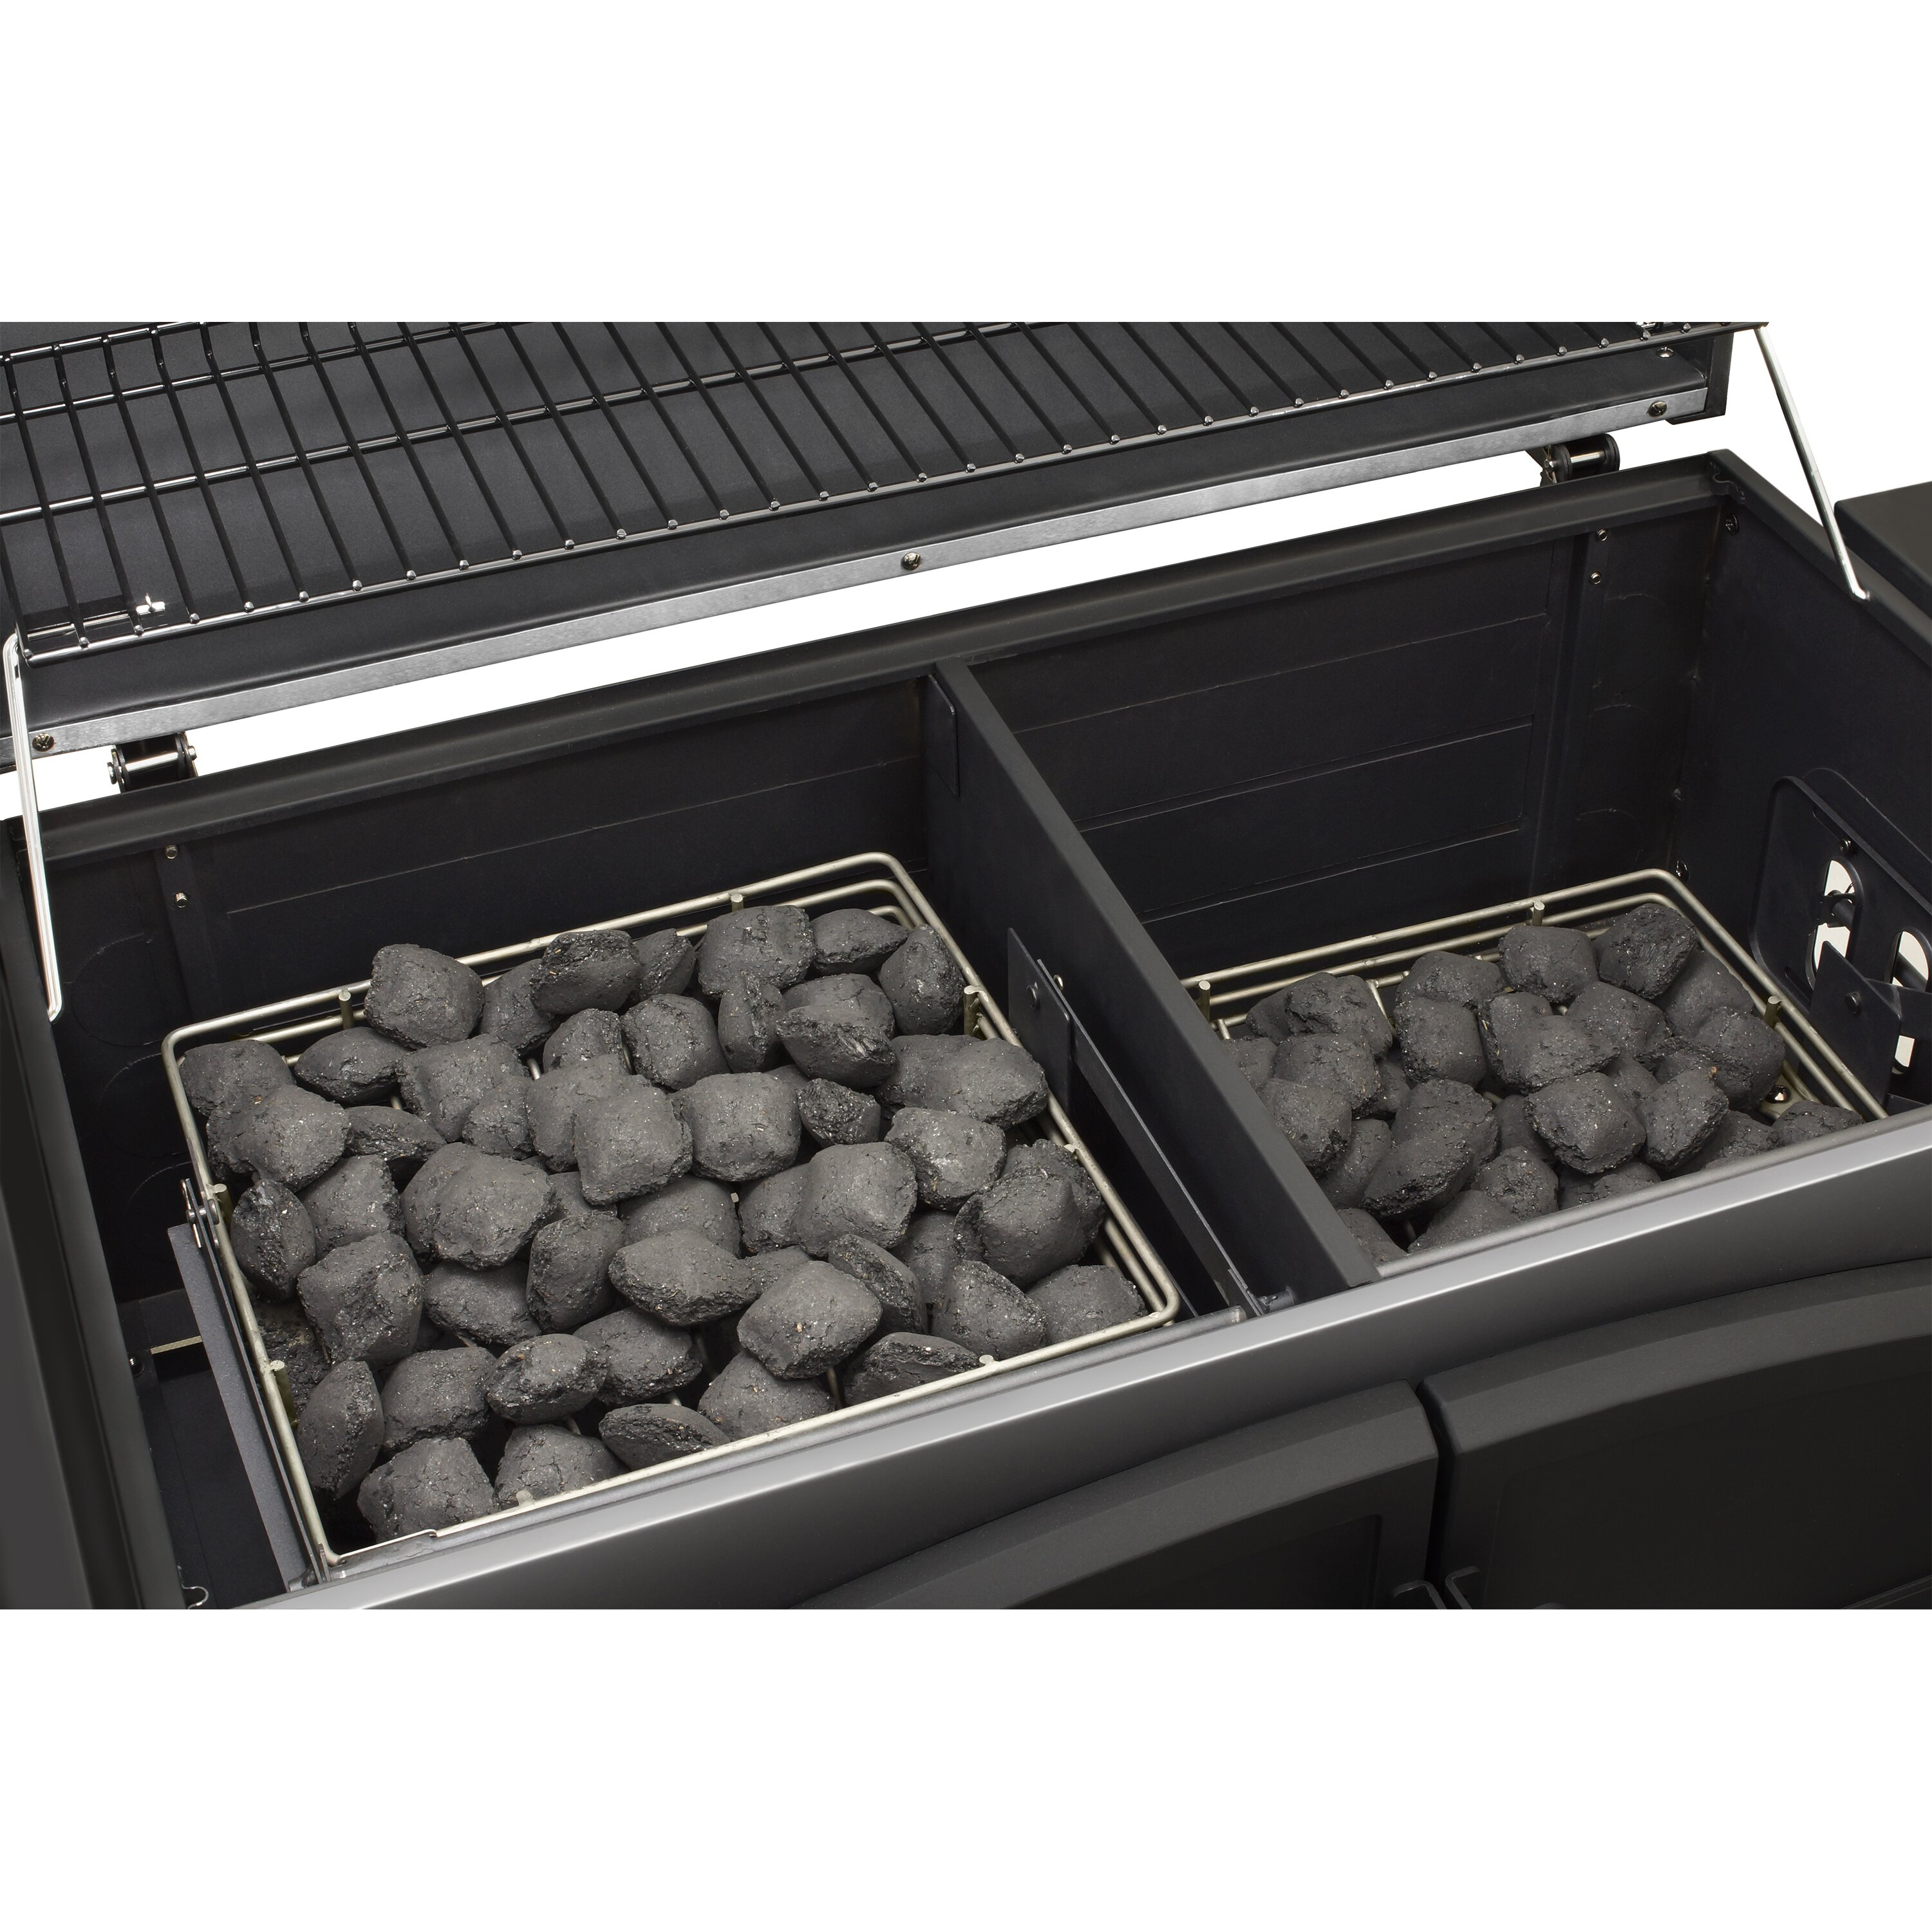 Dual chamber charcoal grill with adjustable charcoal trays by dyna glo